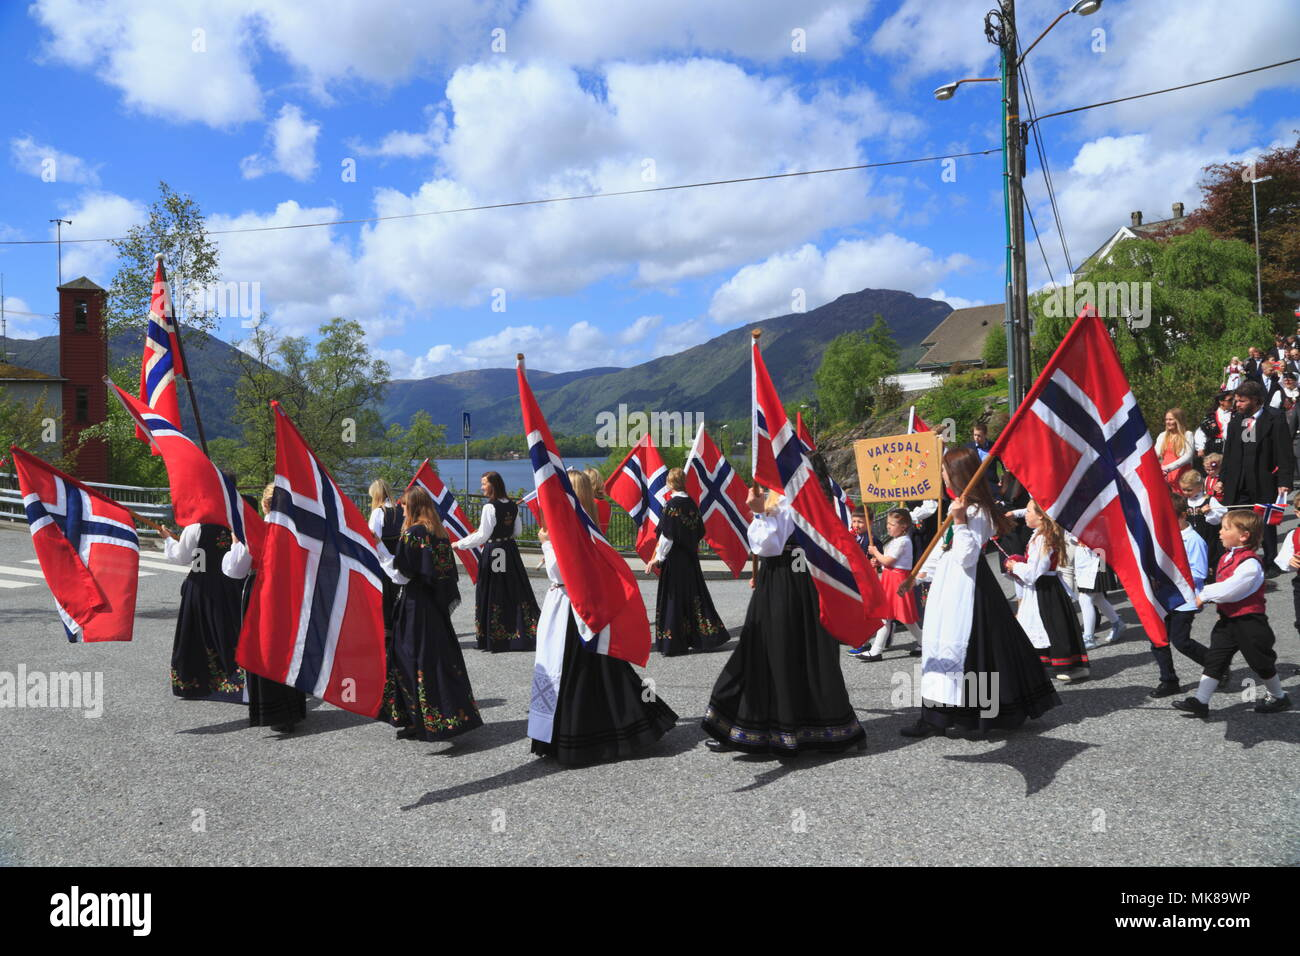 Patriotic Norwegian men and women carry the country flag during a national day parade on 17 May in the town of Vaksdal, in Hordaland County, Norway. Stock Photo